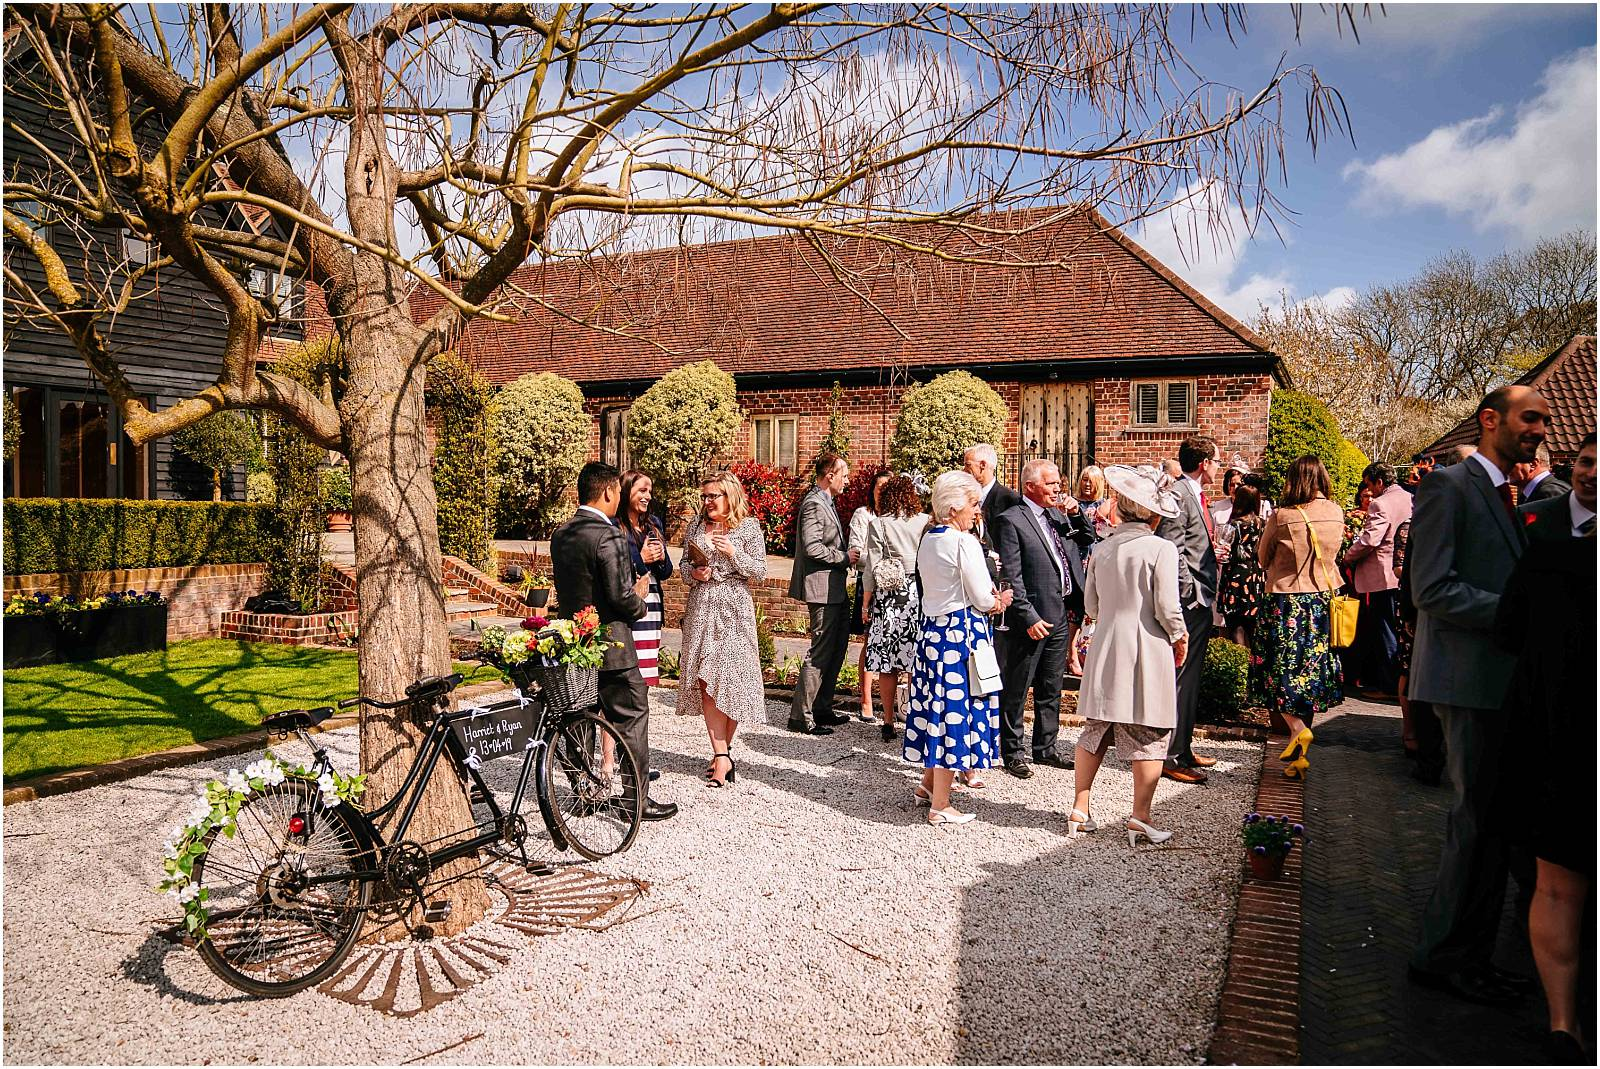 sunny wedding reception in hertfordshire